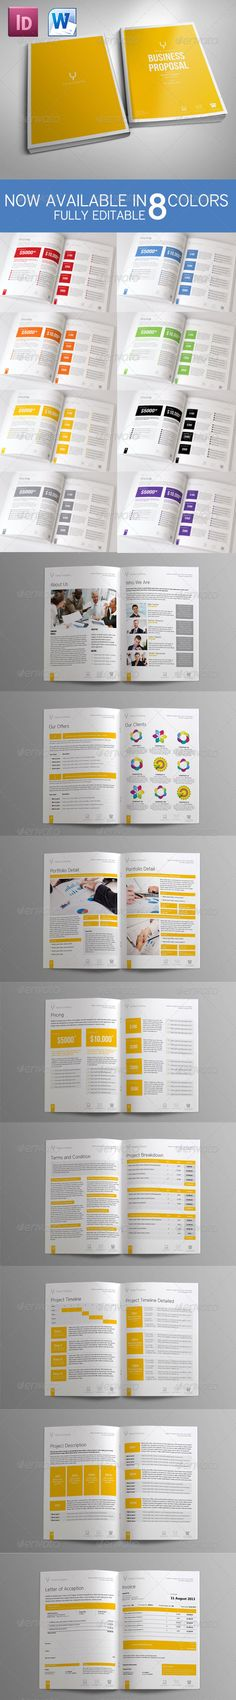 Gstudio Web Proposal Template V2 Proposal templates, Proposals - microsoft office proposal templates